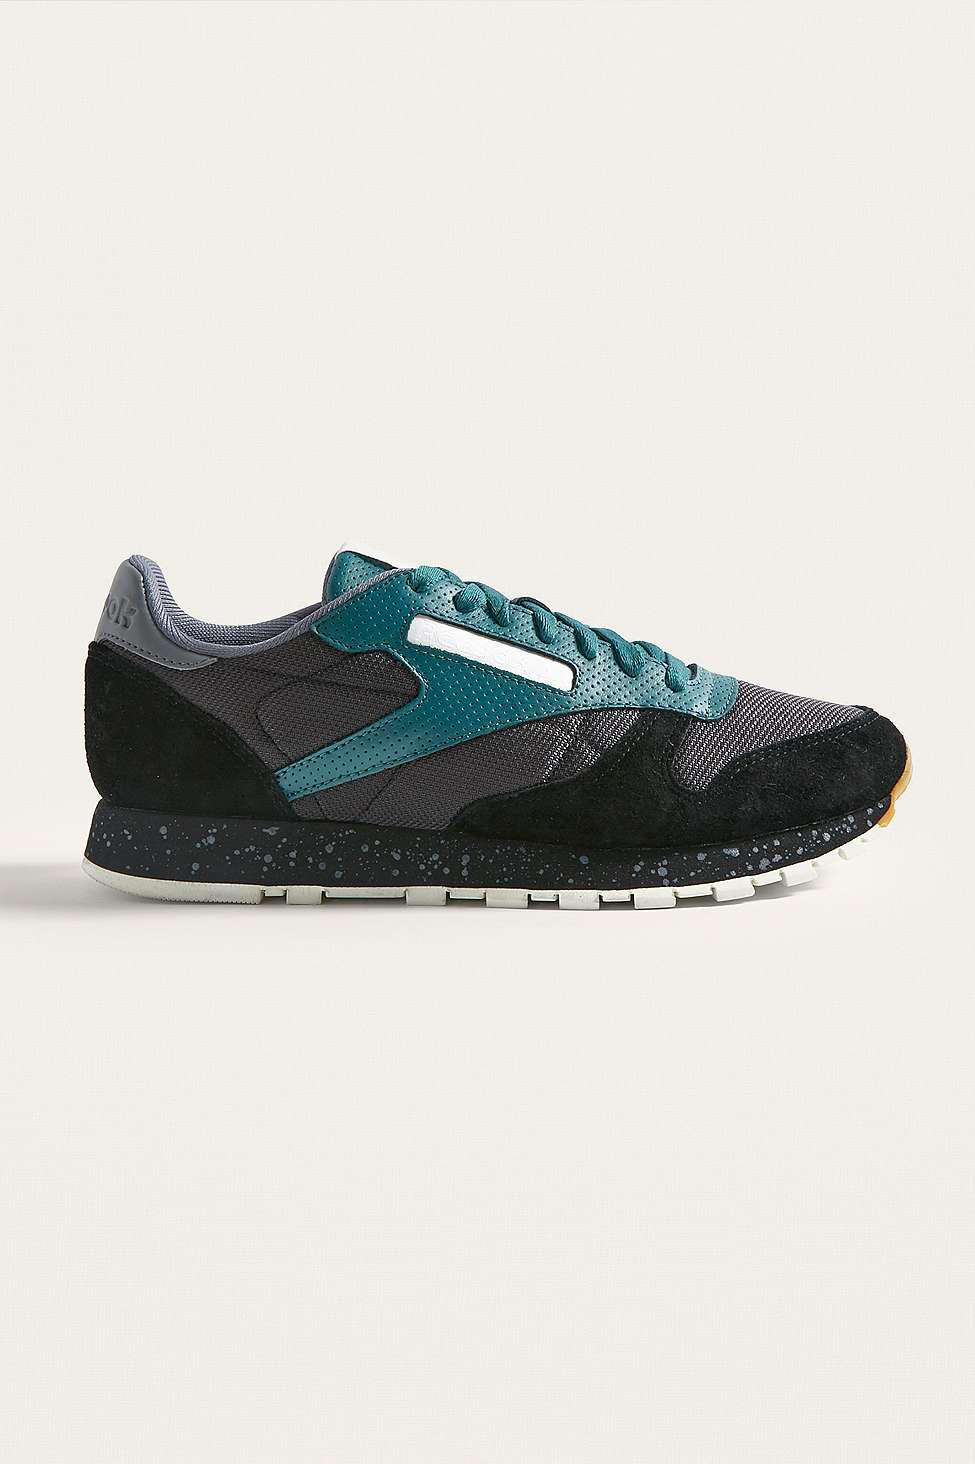 6bb76c2962a536 Reebok Classic Leather Sm Black And Teal Trainers - Mens Uk 12 in ...